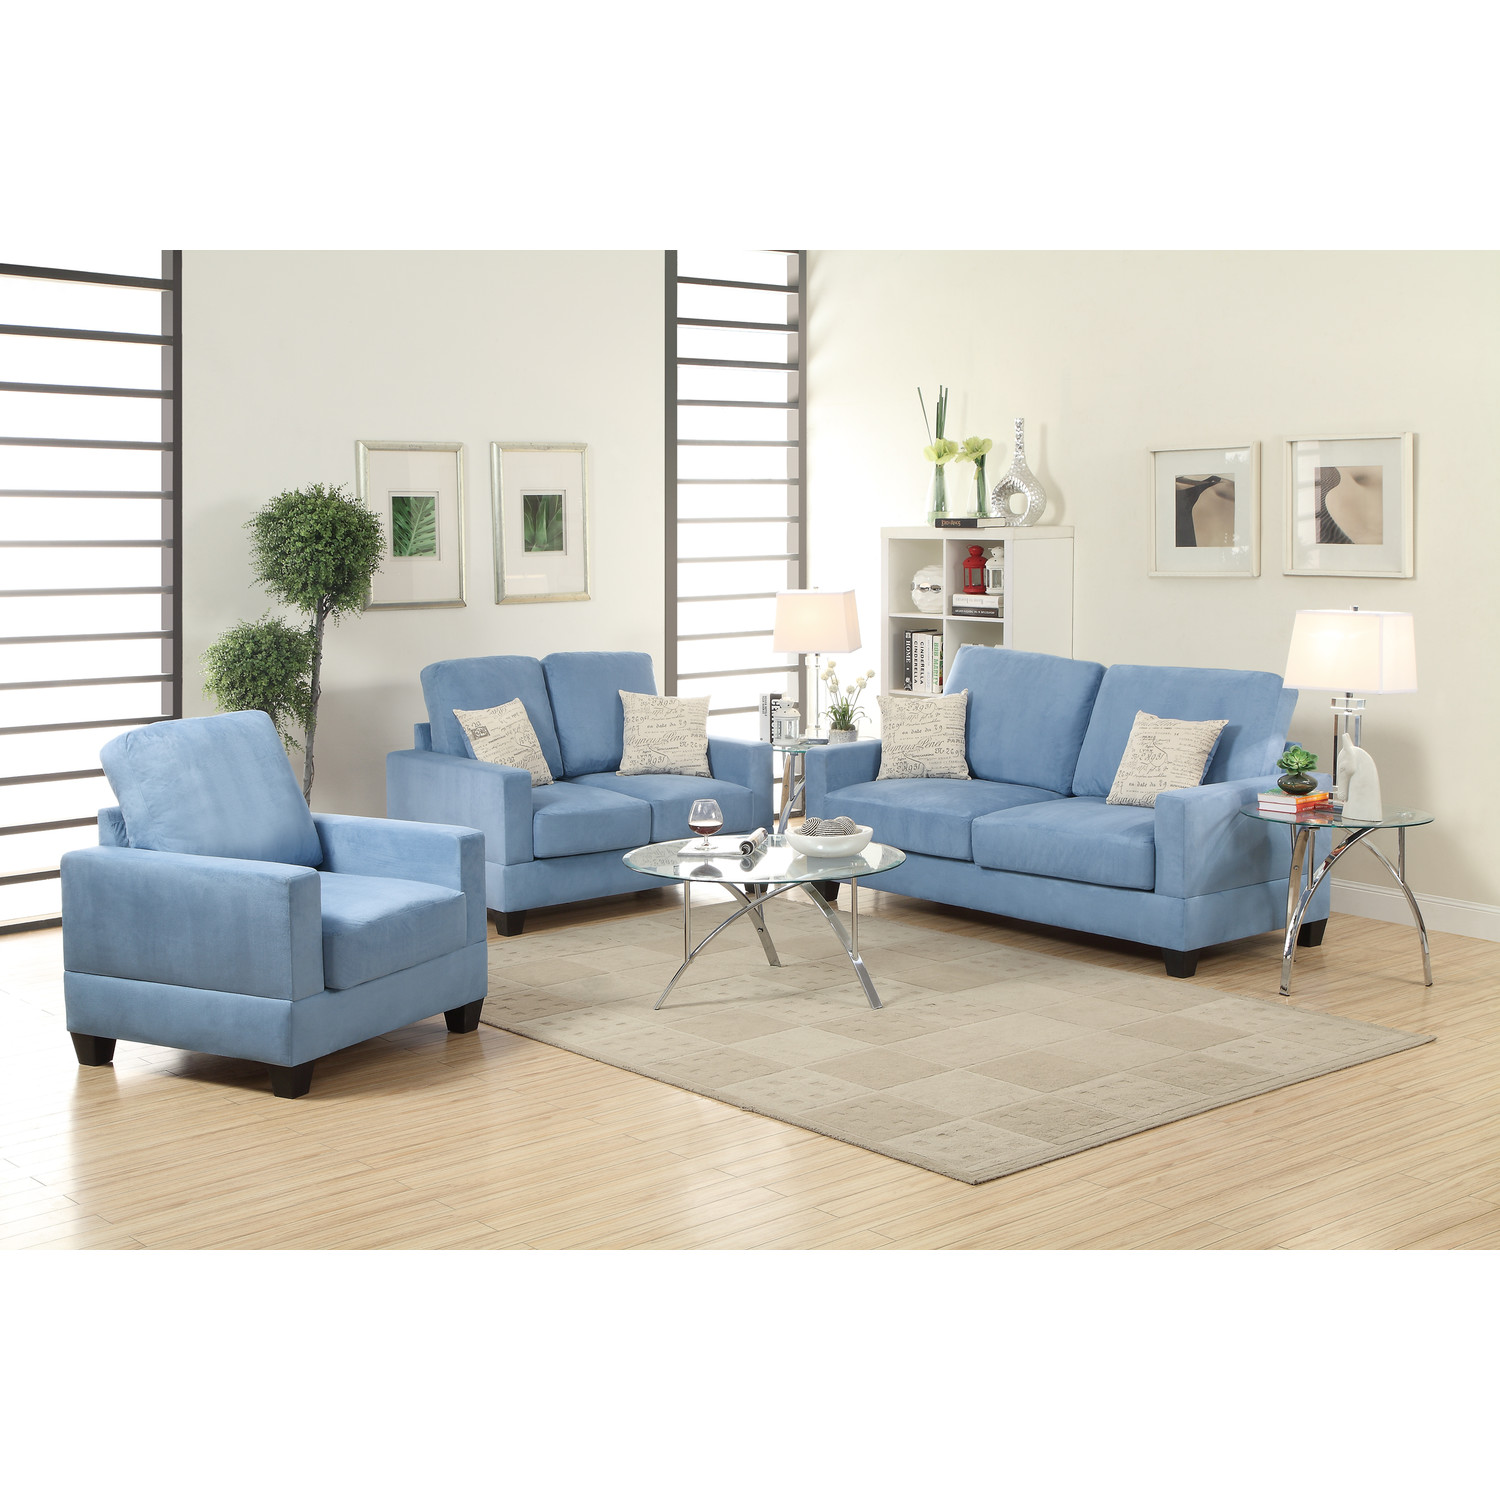 Blue Sectional Sofas And White Pillows Glass Table In The Middle Brown Carpet Simple Lamps Apartment Size